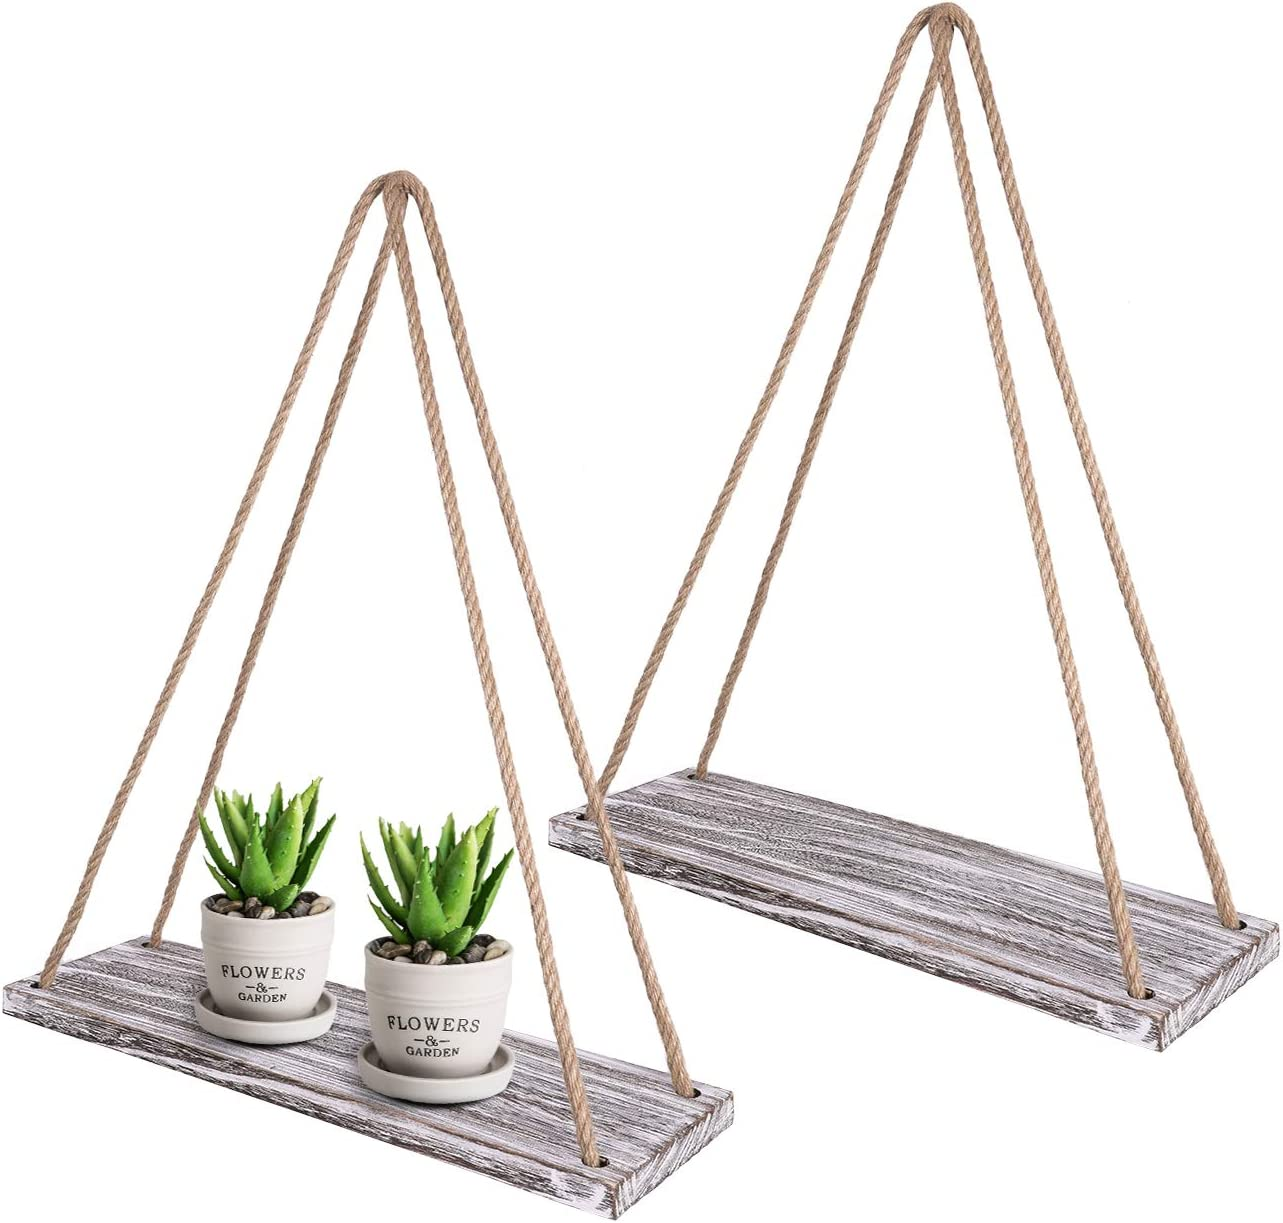 TIMEYARD Wall Hanging Shelf Set of 2 - White Distressed Wood Jute Rope Floating Shelves, Farmhouse Organizer Rustic Home Decor